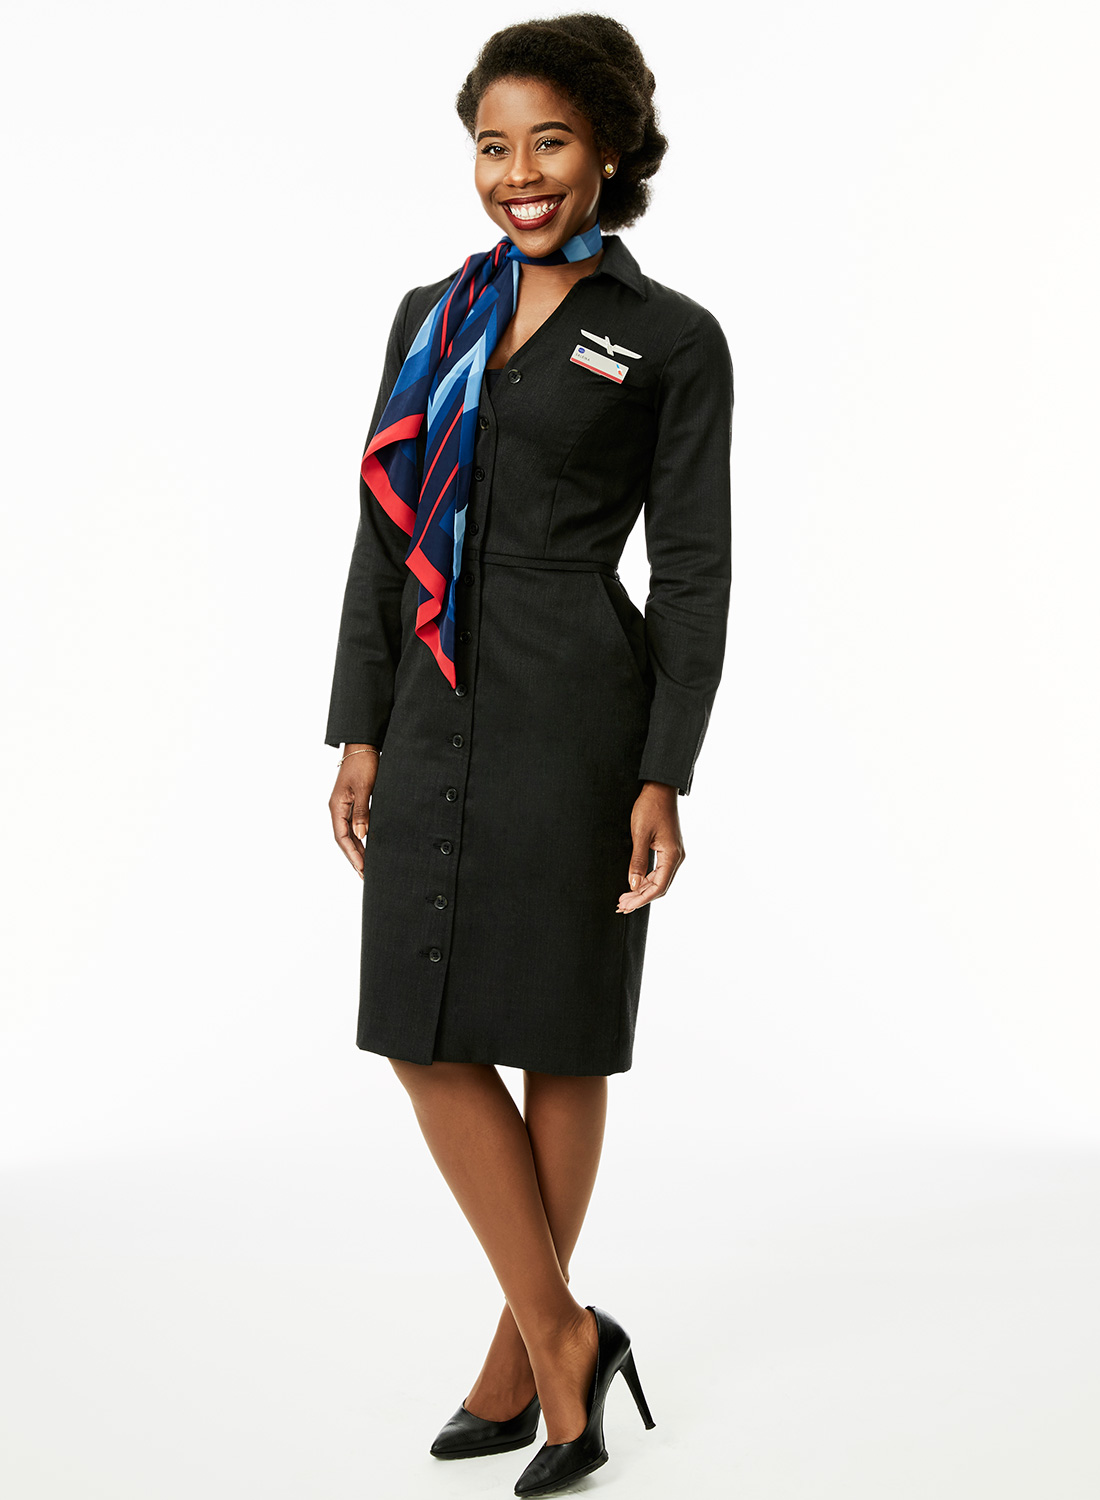 160920_AmericanAirlines_Portraits_By_BriJohnson_0008.jpg